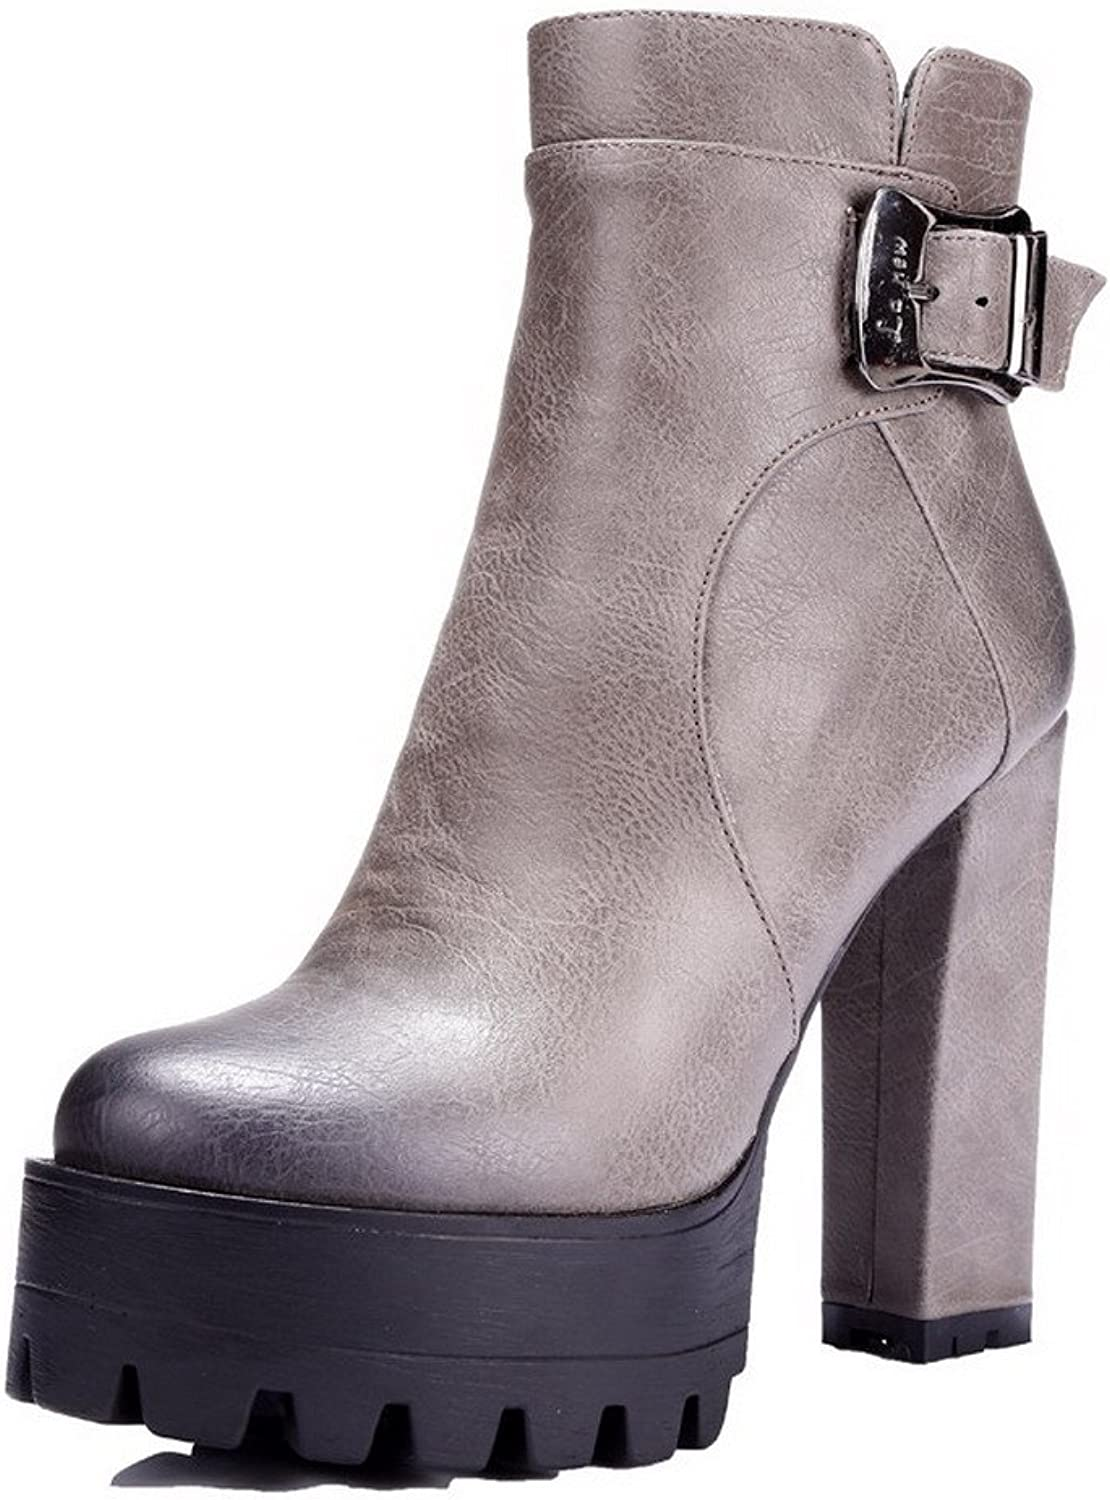 WeenFashion Women's Microfibre High-Heels Round-Toe Boots with Slipping Sole and Platform